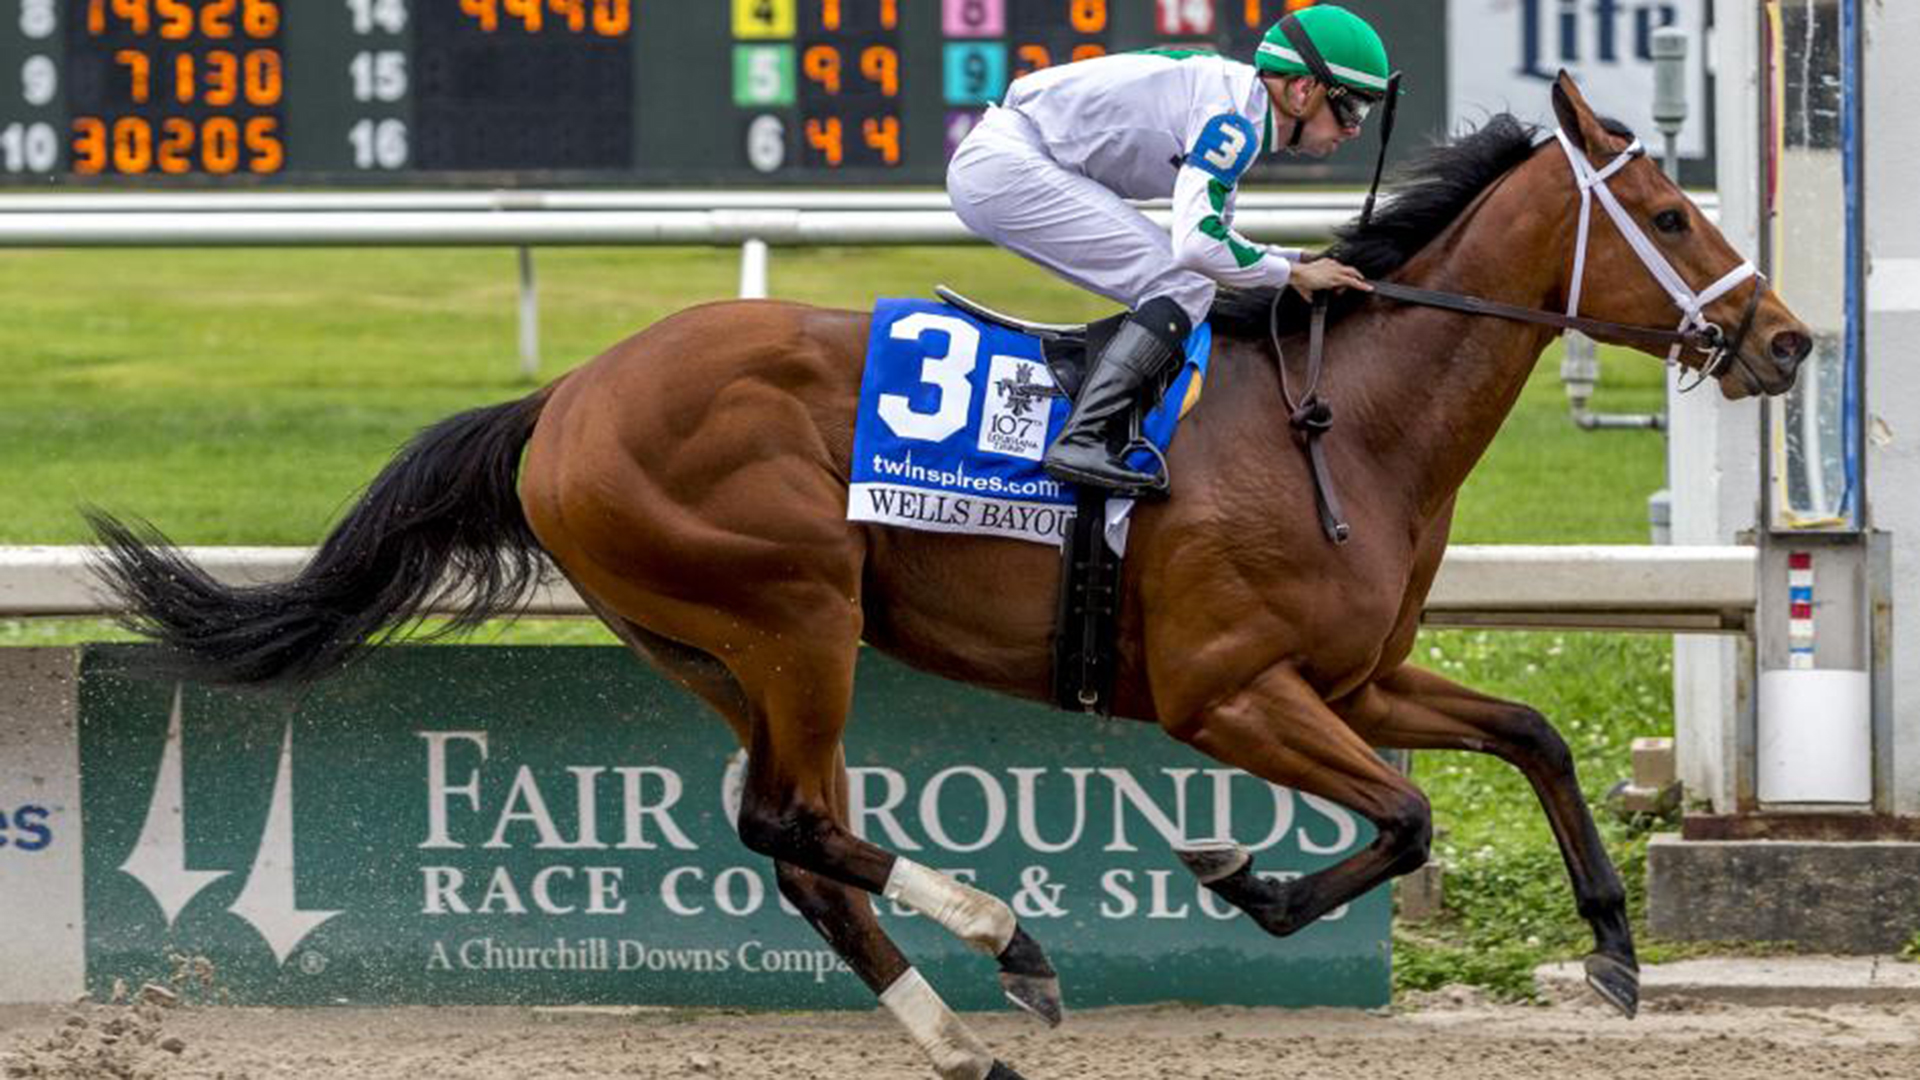 Kelly Green And White Take Over Horse Racing University Of Arkansas At Monticello Athletics